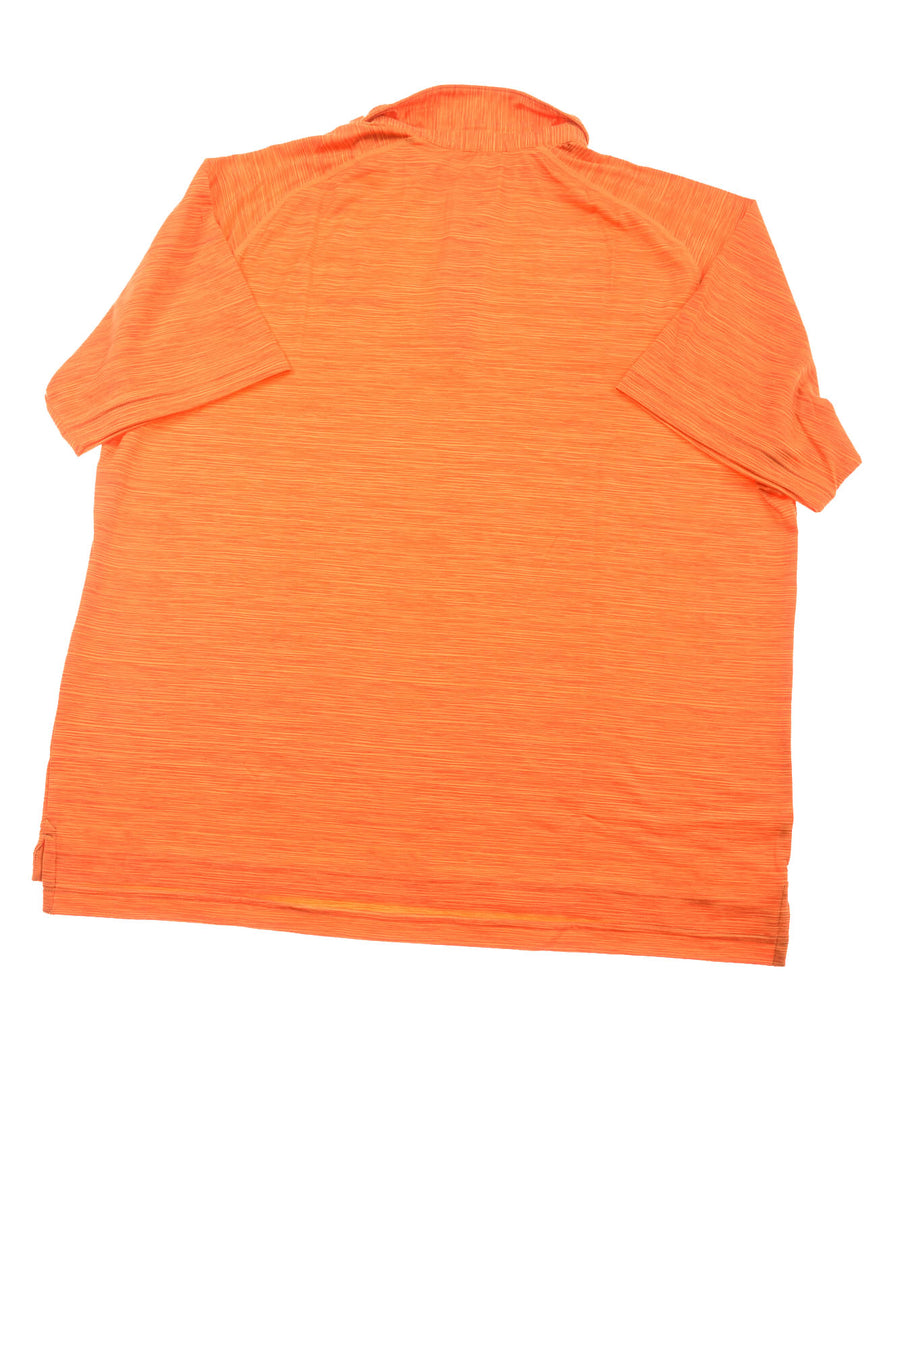 NEW Merrell Men's Shirt X-Large Orange